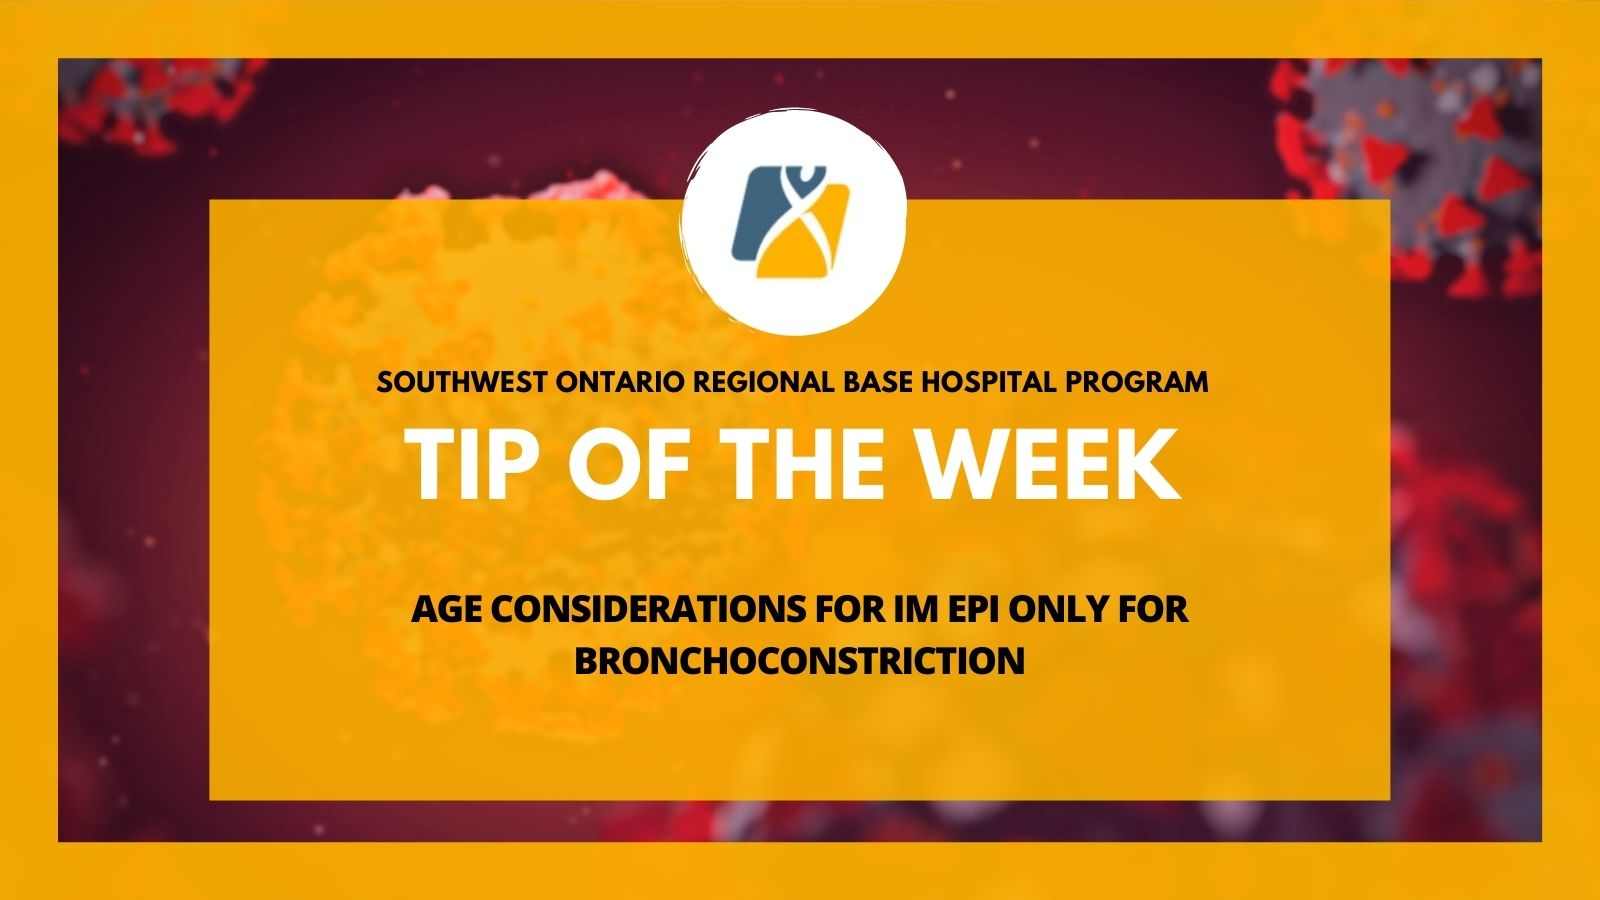 TOTW: Age Considerations for IM Epi Only for Bronchoconstriction